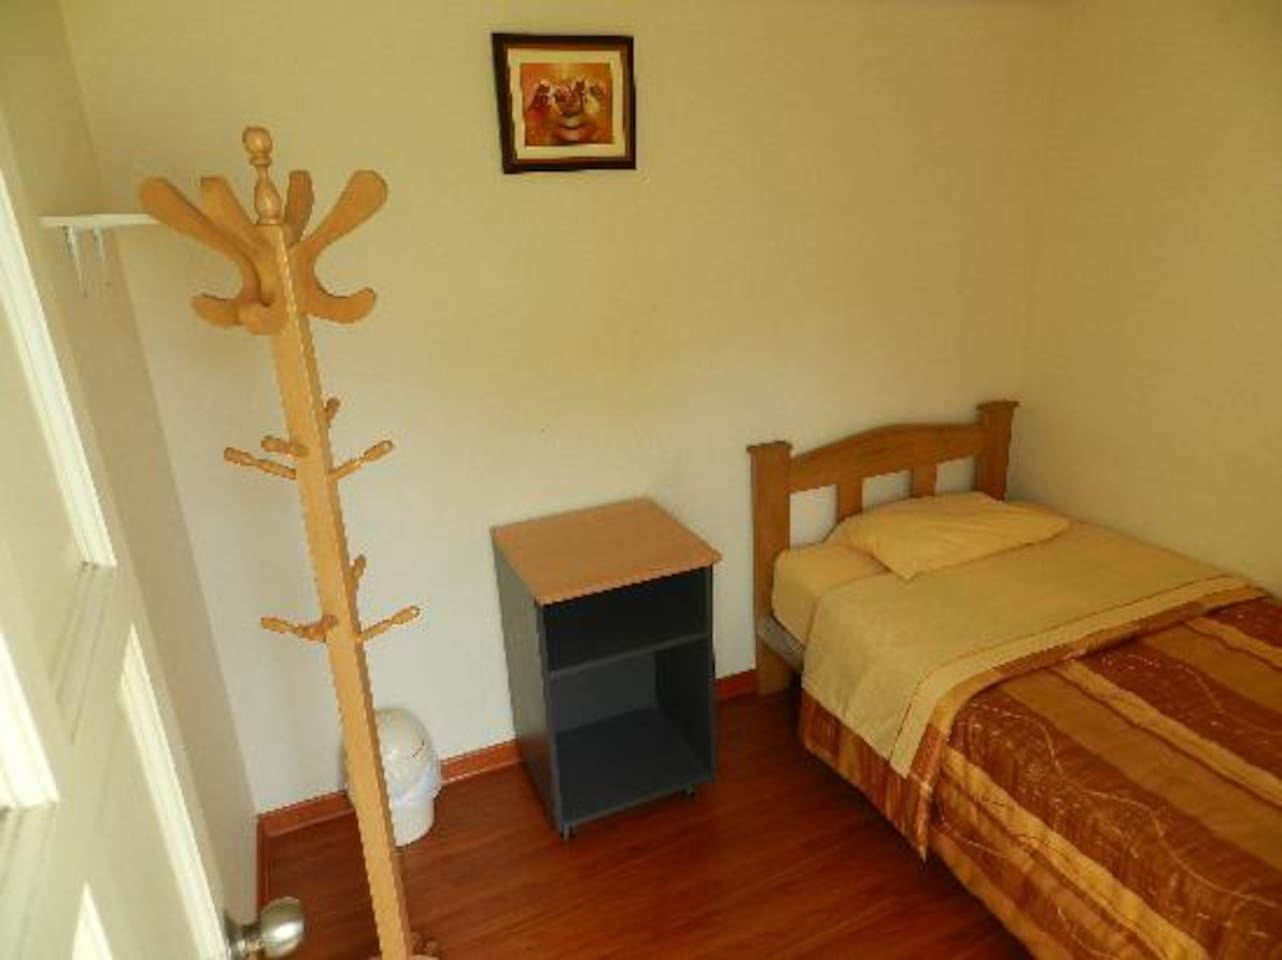 This is one of the rooms,  clean,  small and private